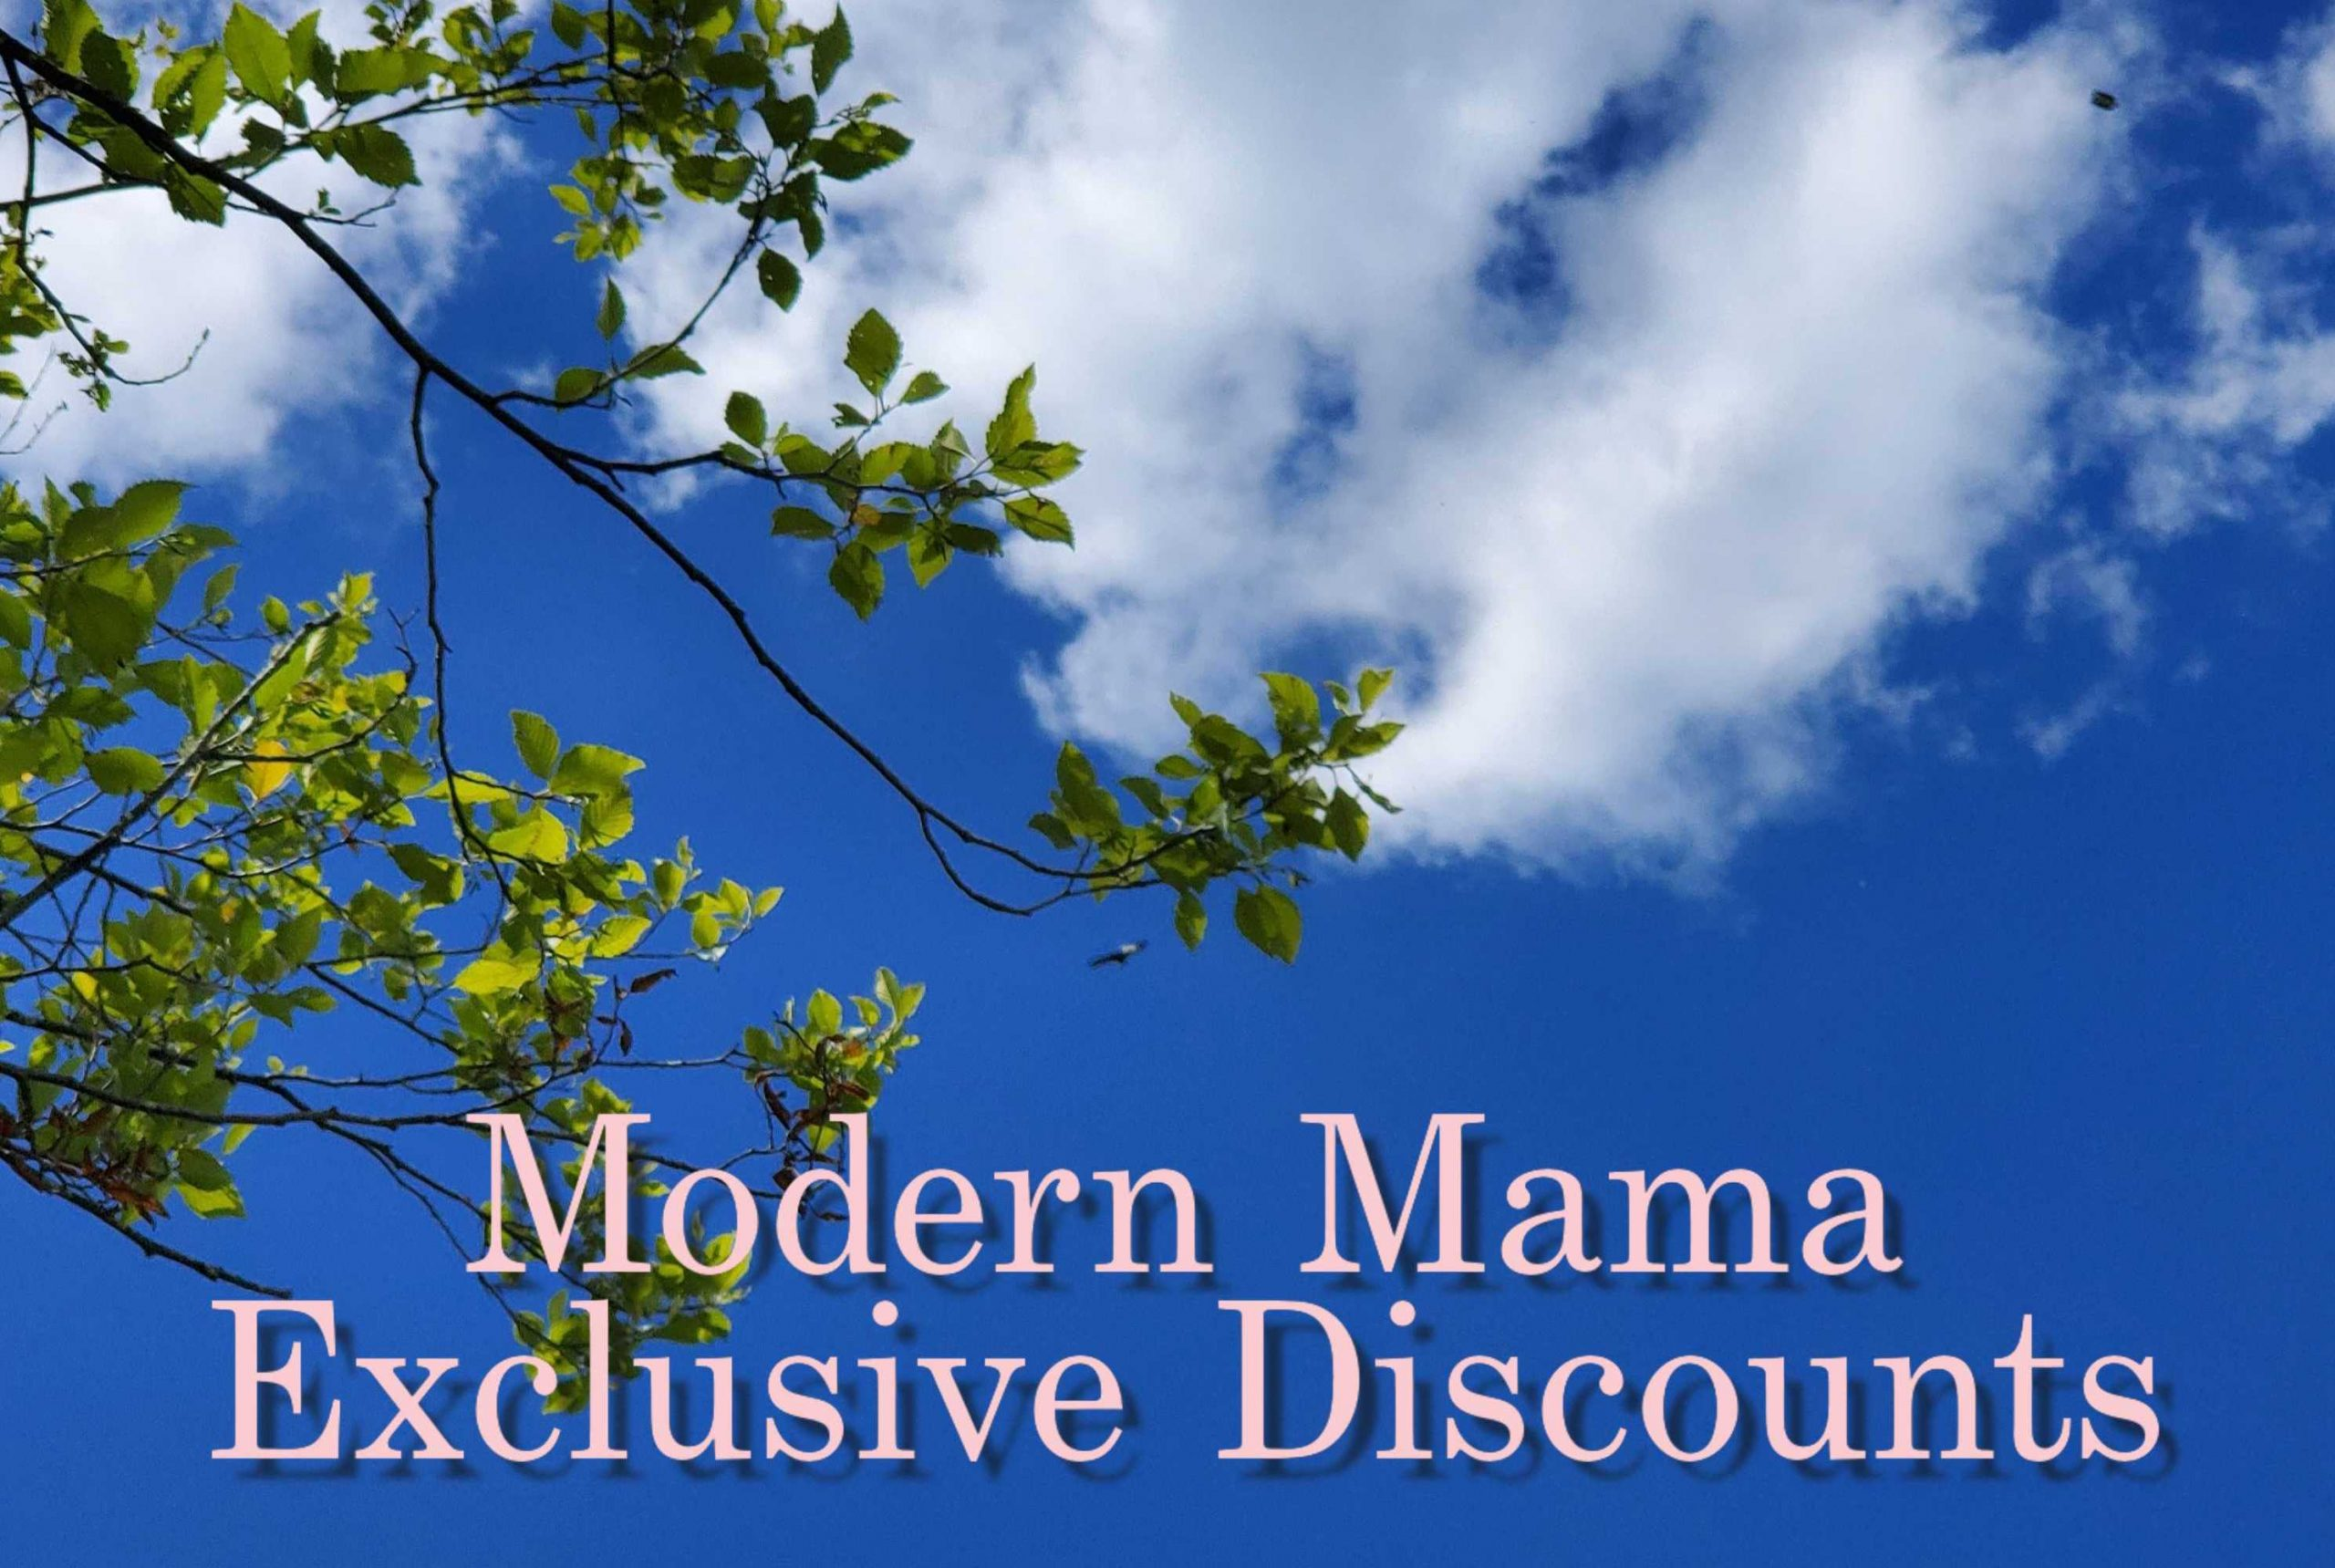 Discounts just for Modern Mama followers